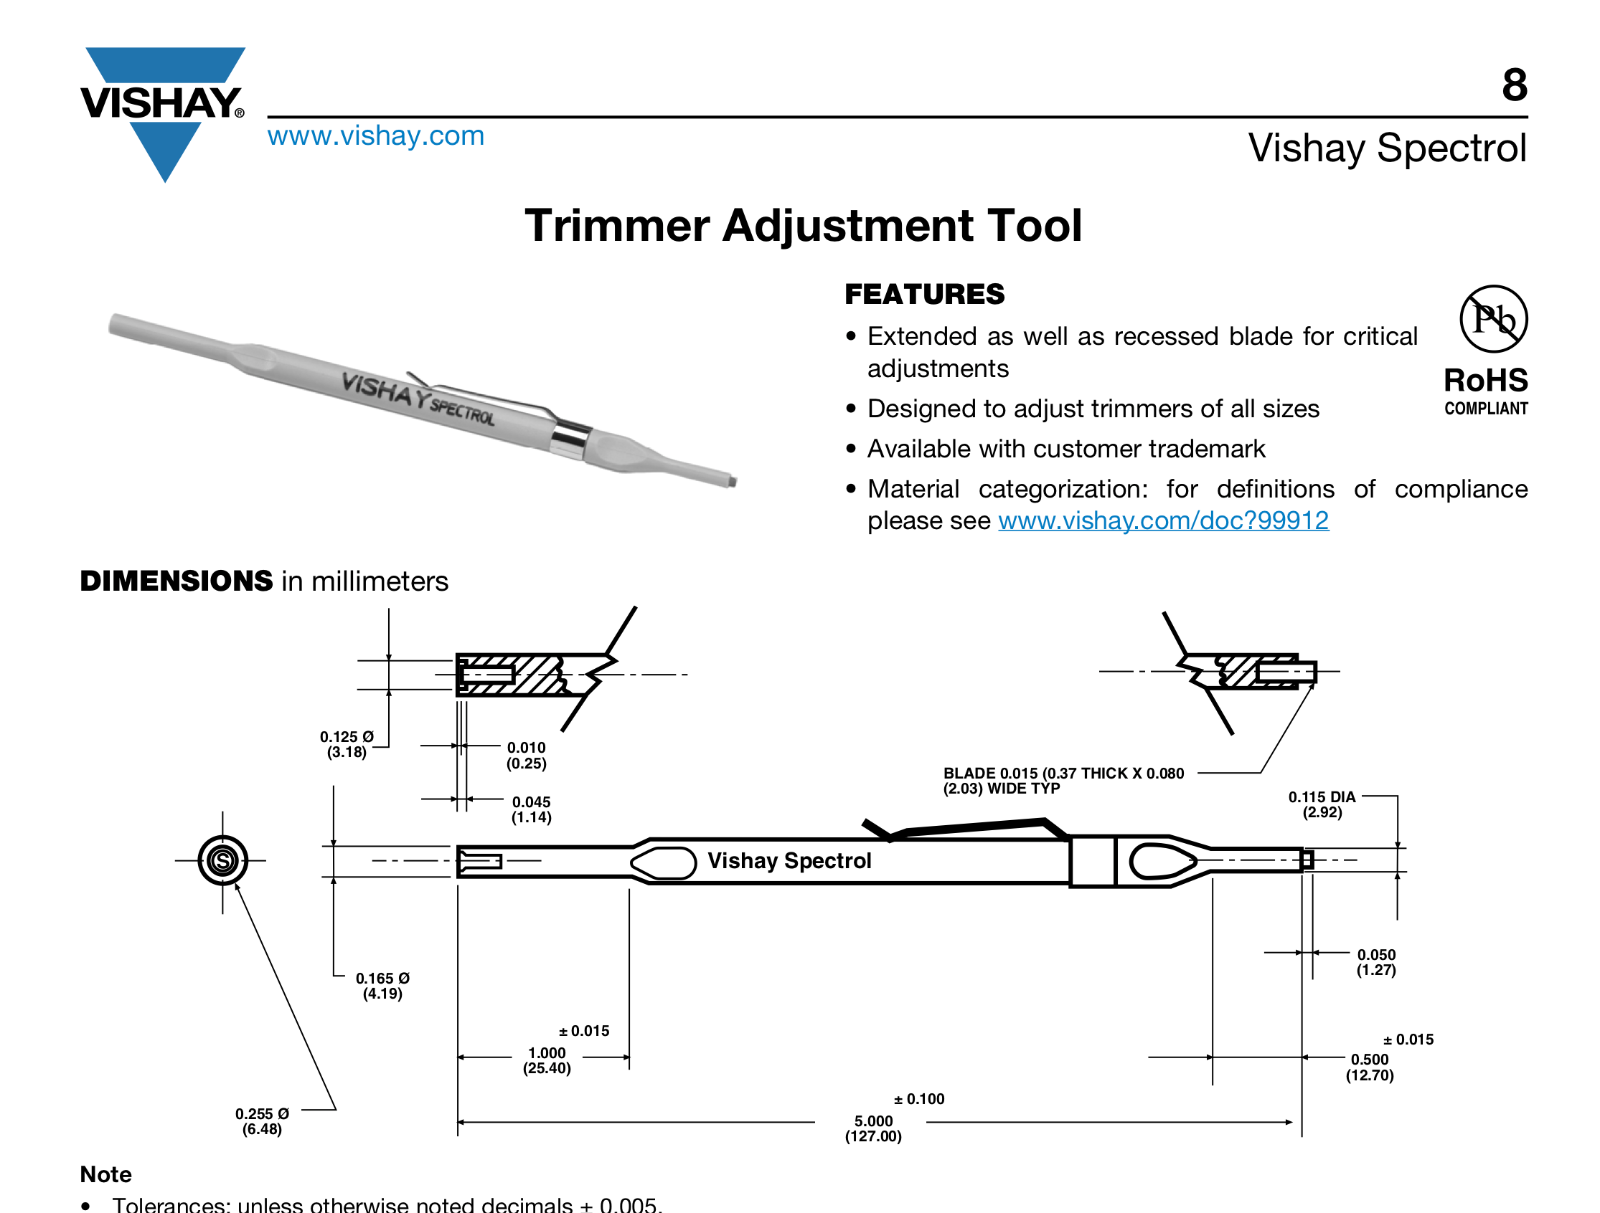 VISHAY SPECTROL 008T000 Trimmer Adjustment Tool W//Clip for VISHAY Trimmers Pack of 2